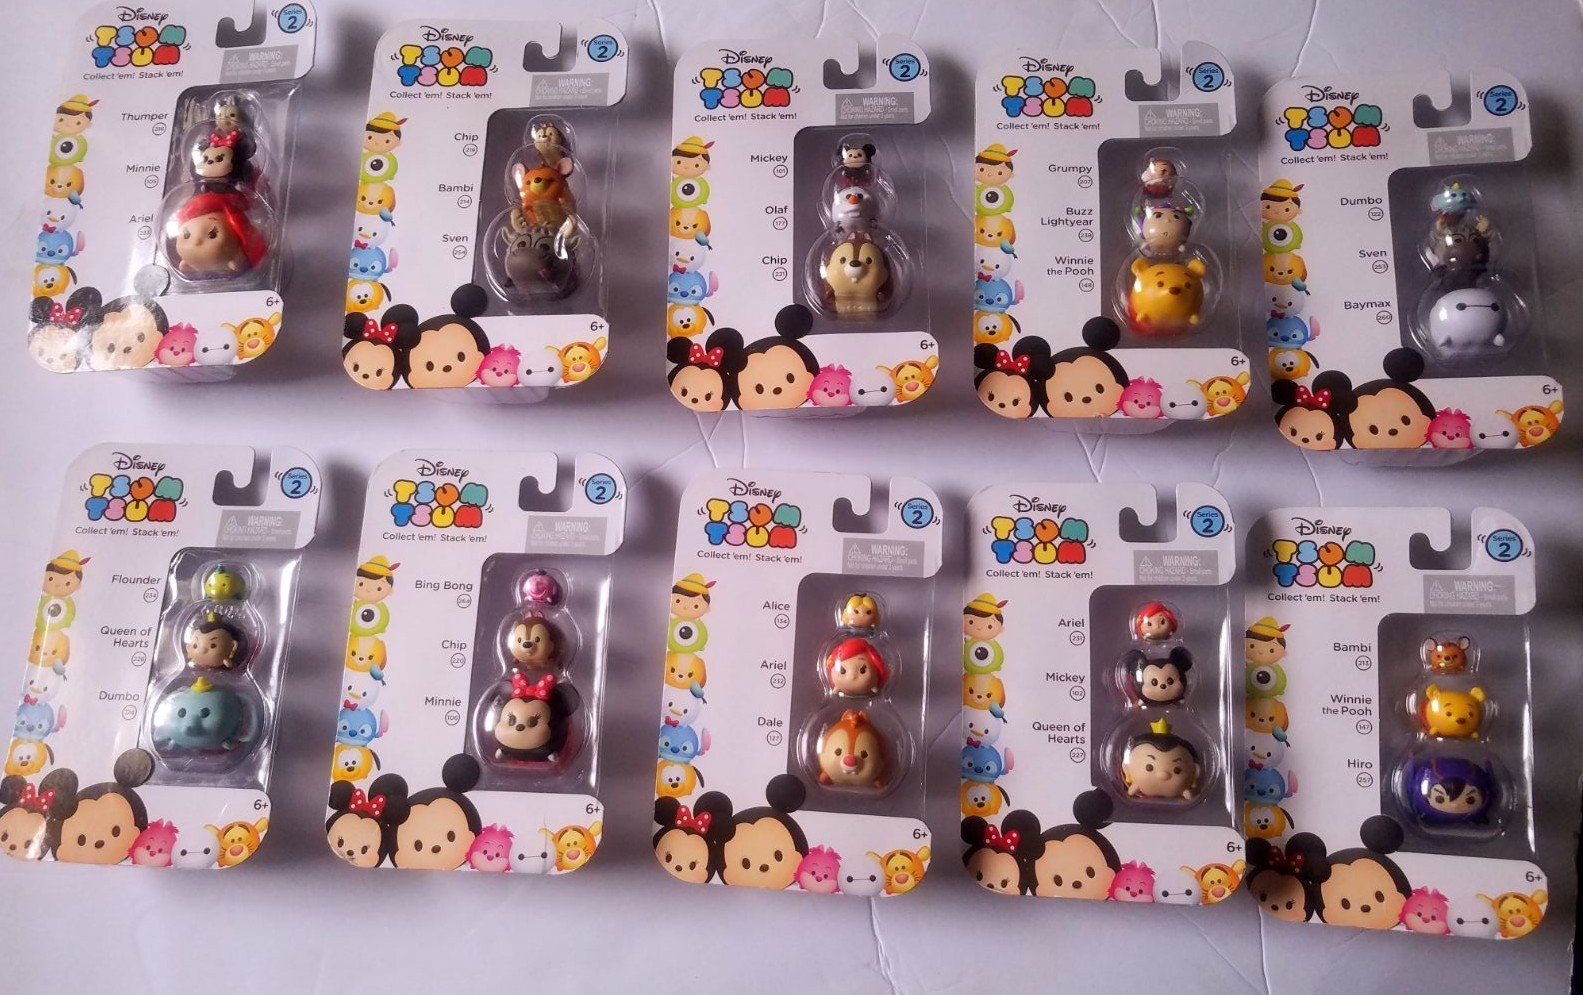 Disney Tsum Tsum Series 2 Includes 9 Figures New and Factory Sealed Free Shippin